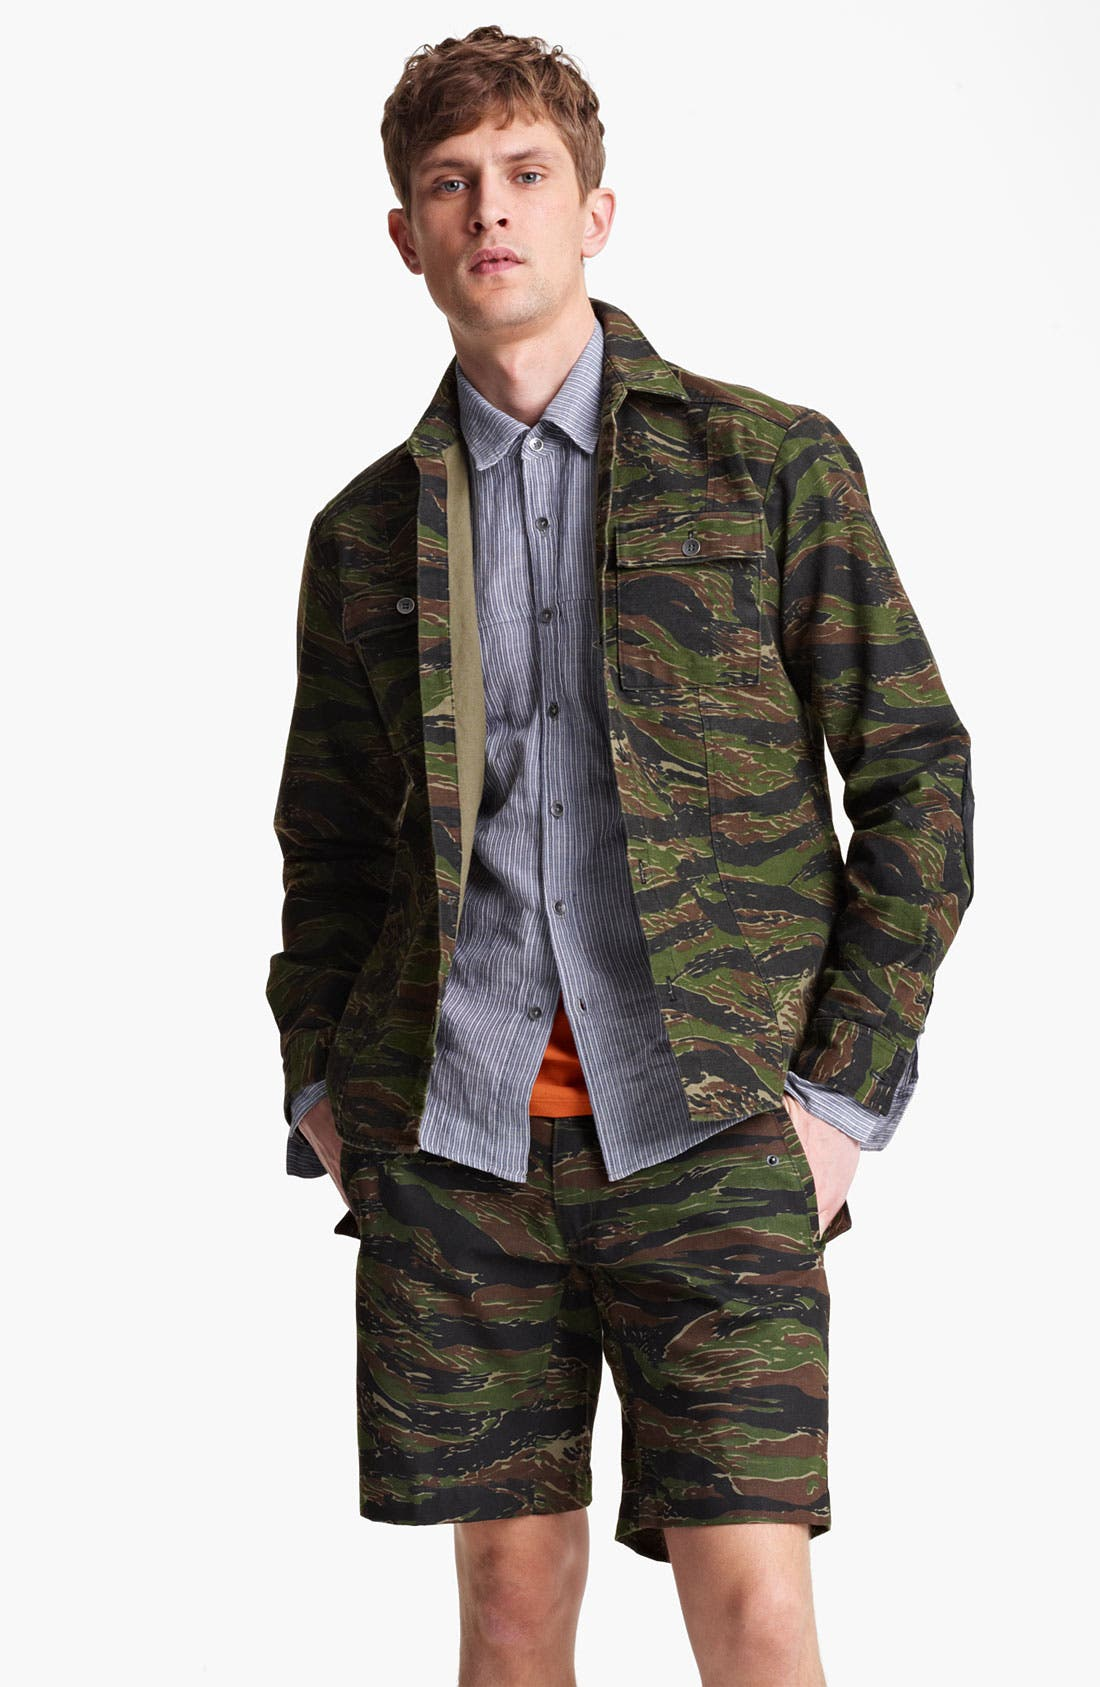 Main Image - Field Scout 'Recon' Camo Shirt